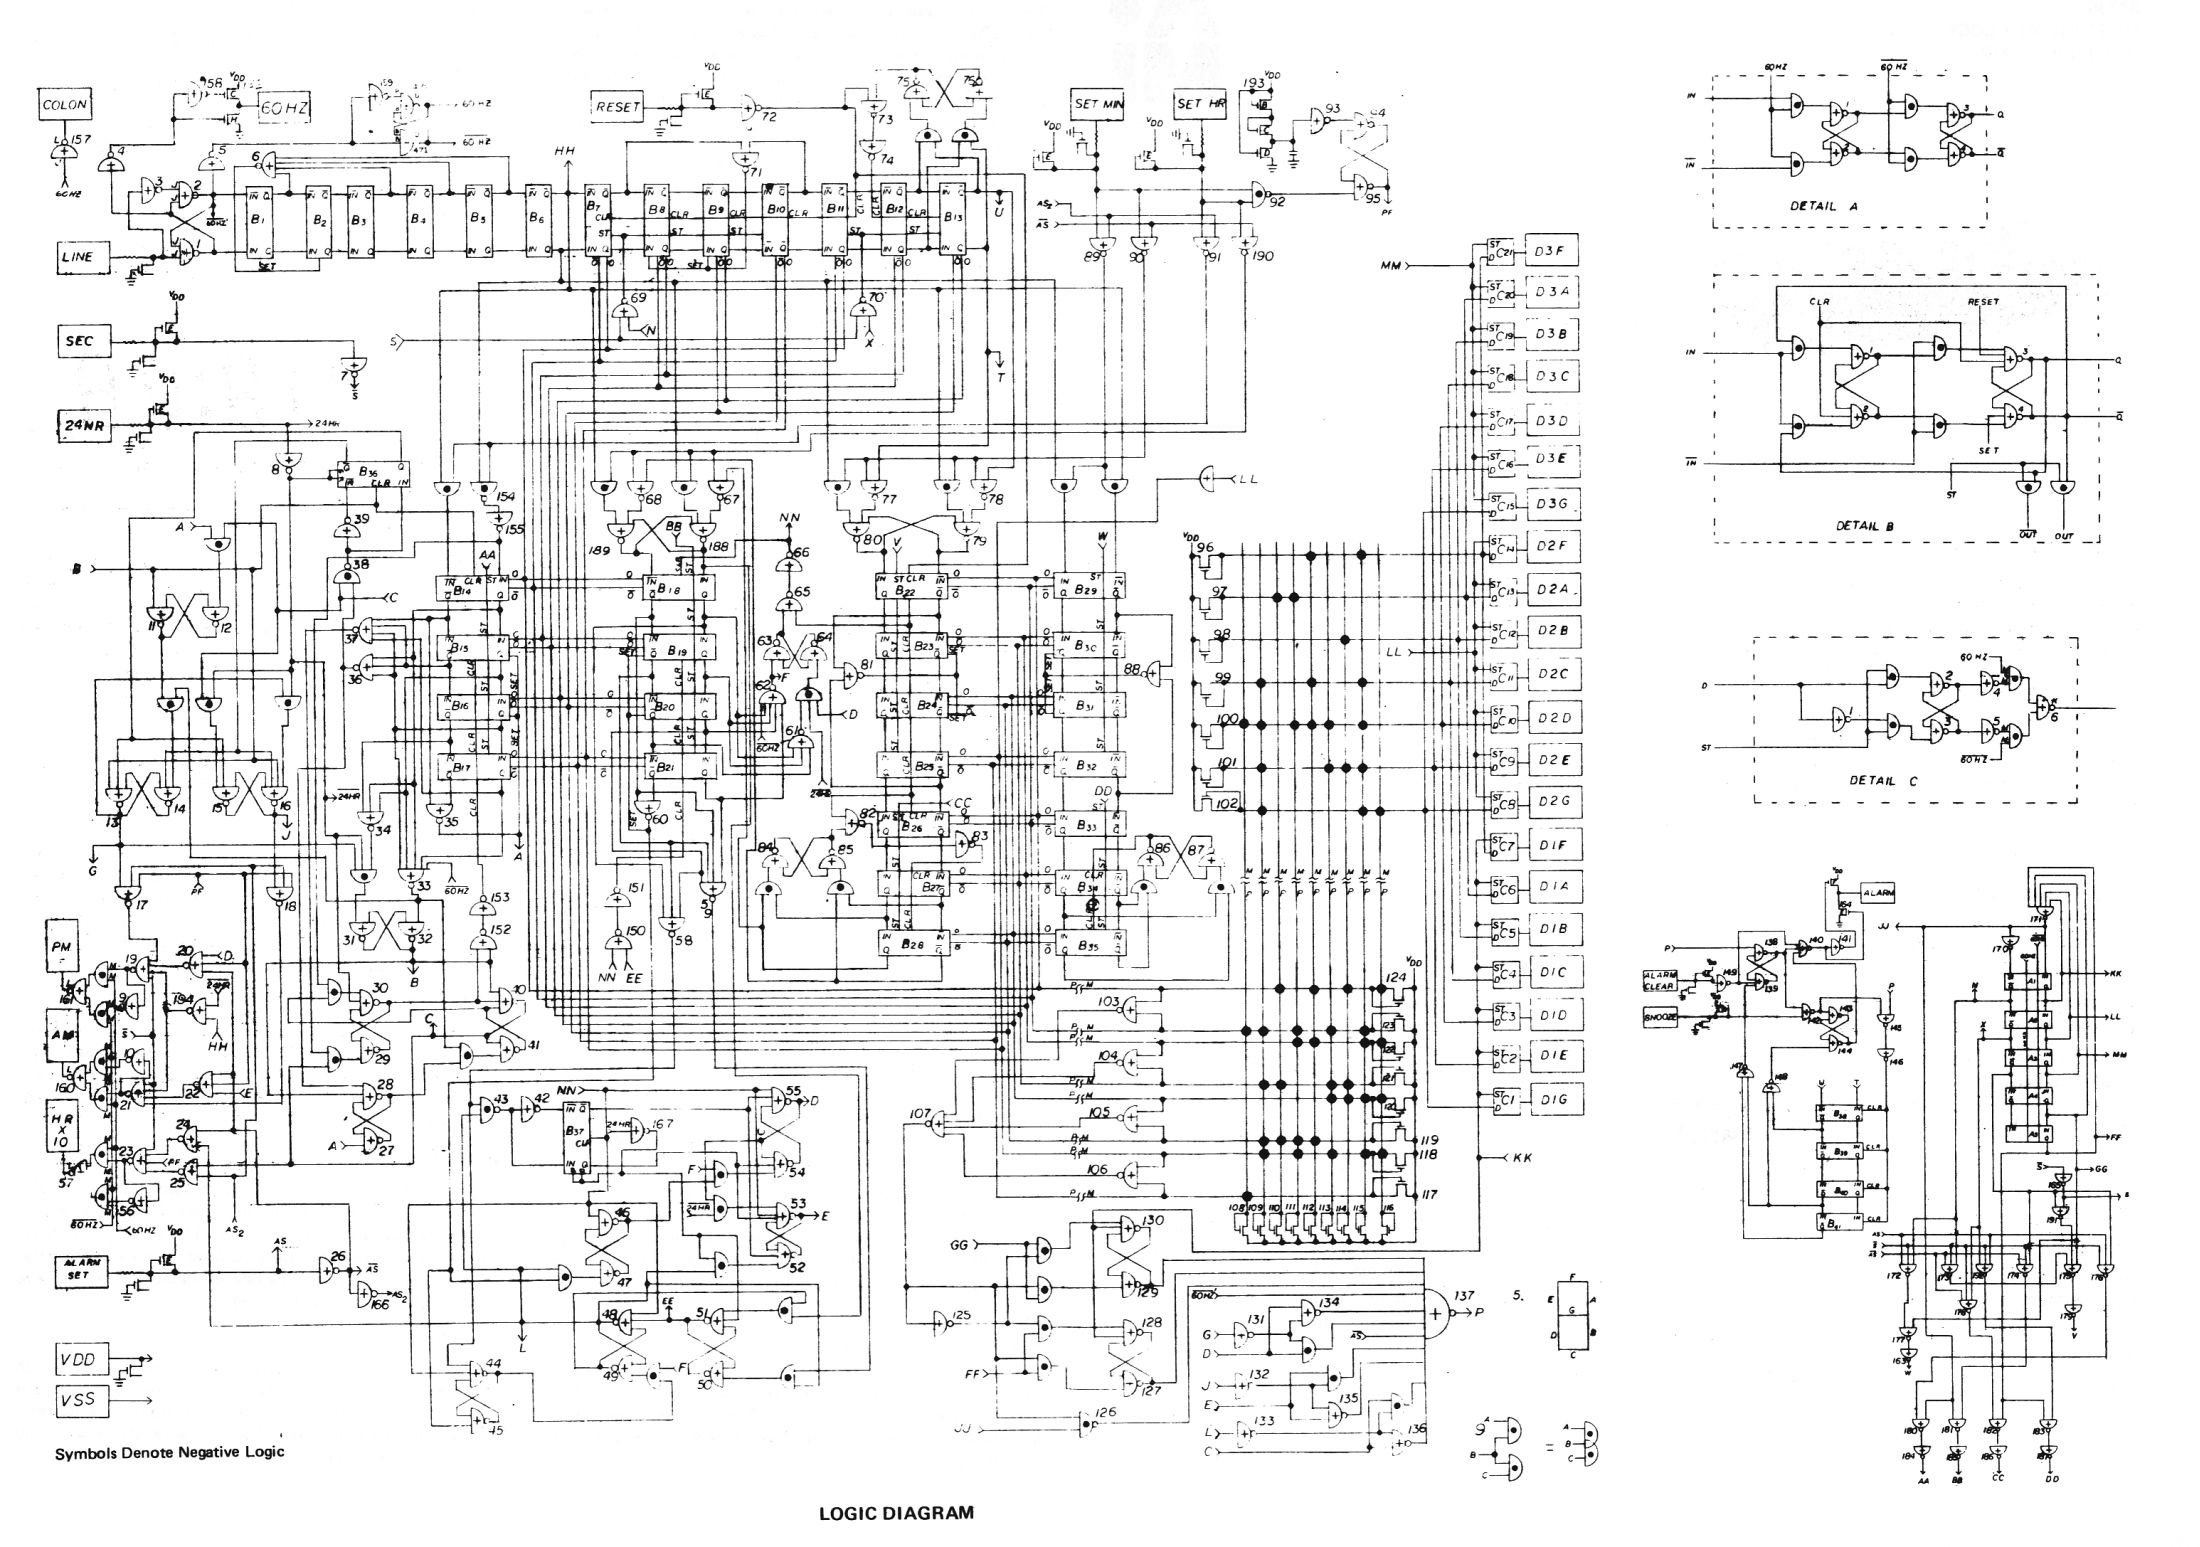 Vintage Digital Clock Circuits Pro Audio Design Forum Directv Wiring Diagram Ami S1736 Logic In Large Format Https Images Iagram